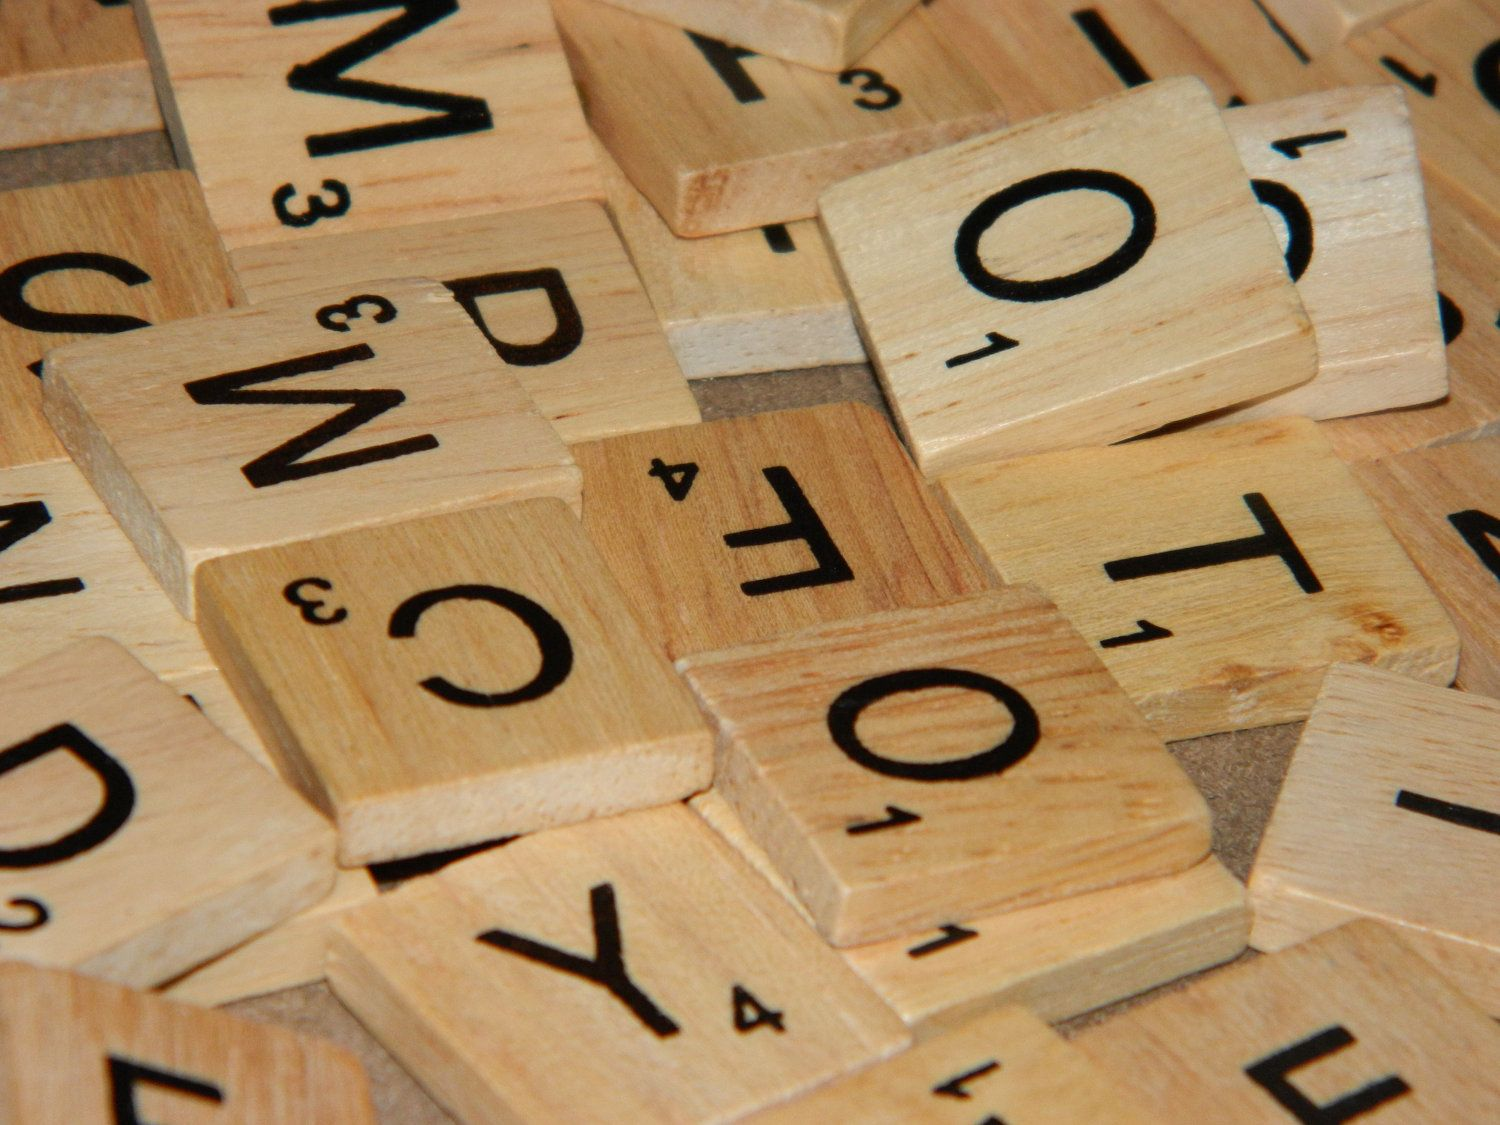 Individual Scrabble-Like Tiles Letters - Unlimited Quantities Available - $0.25, via Etsy.